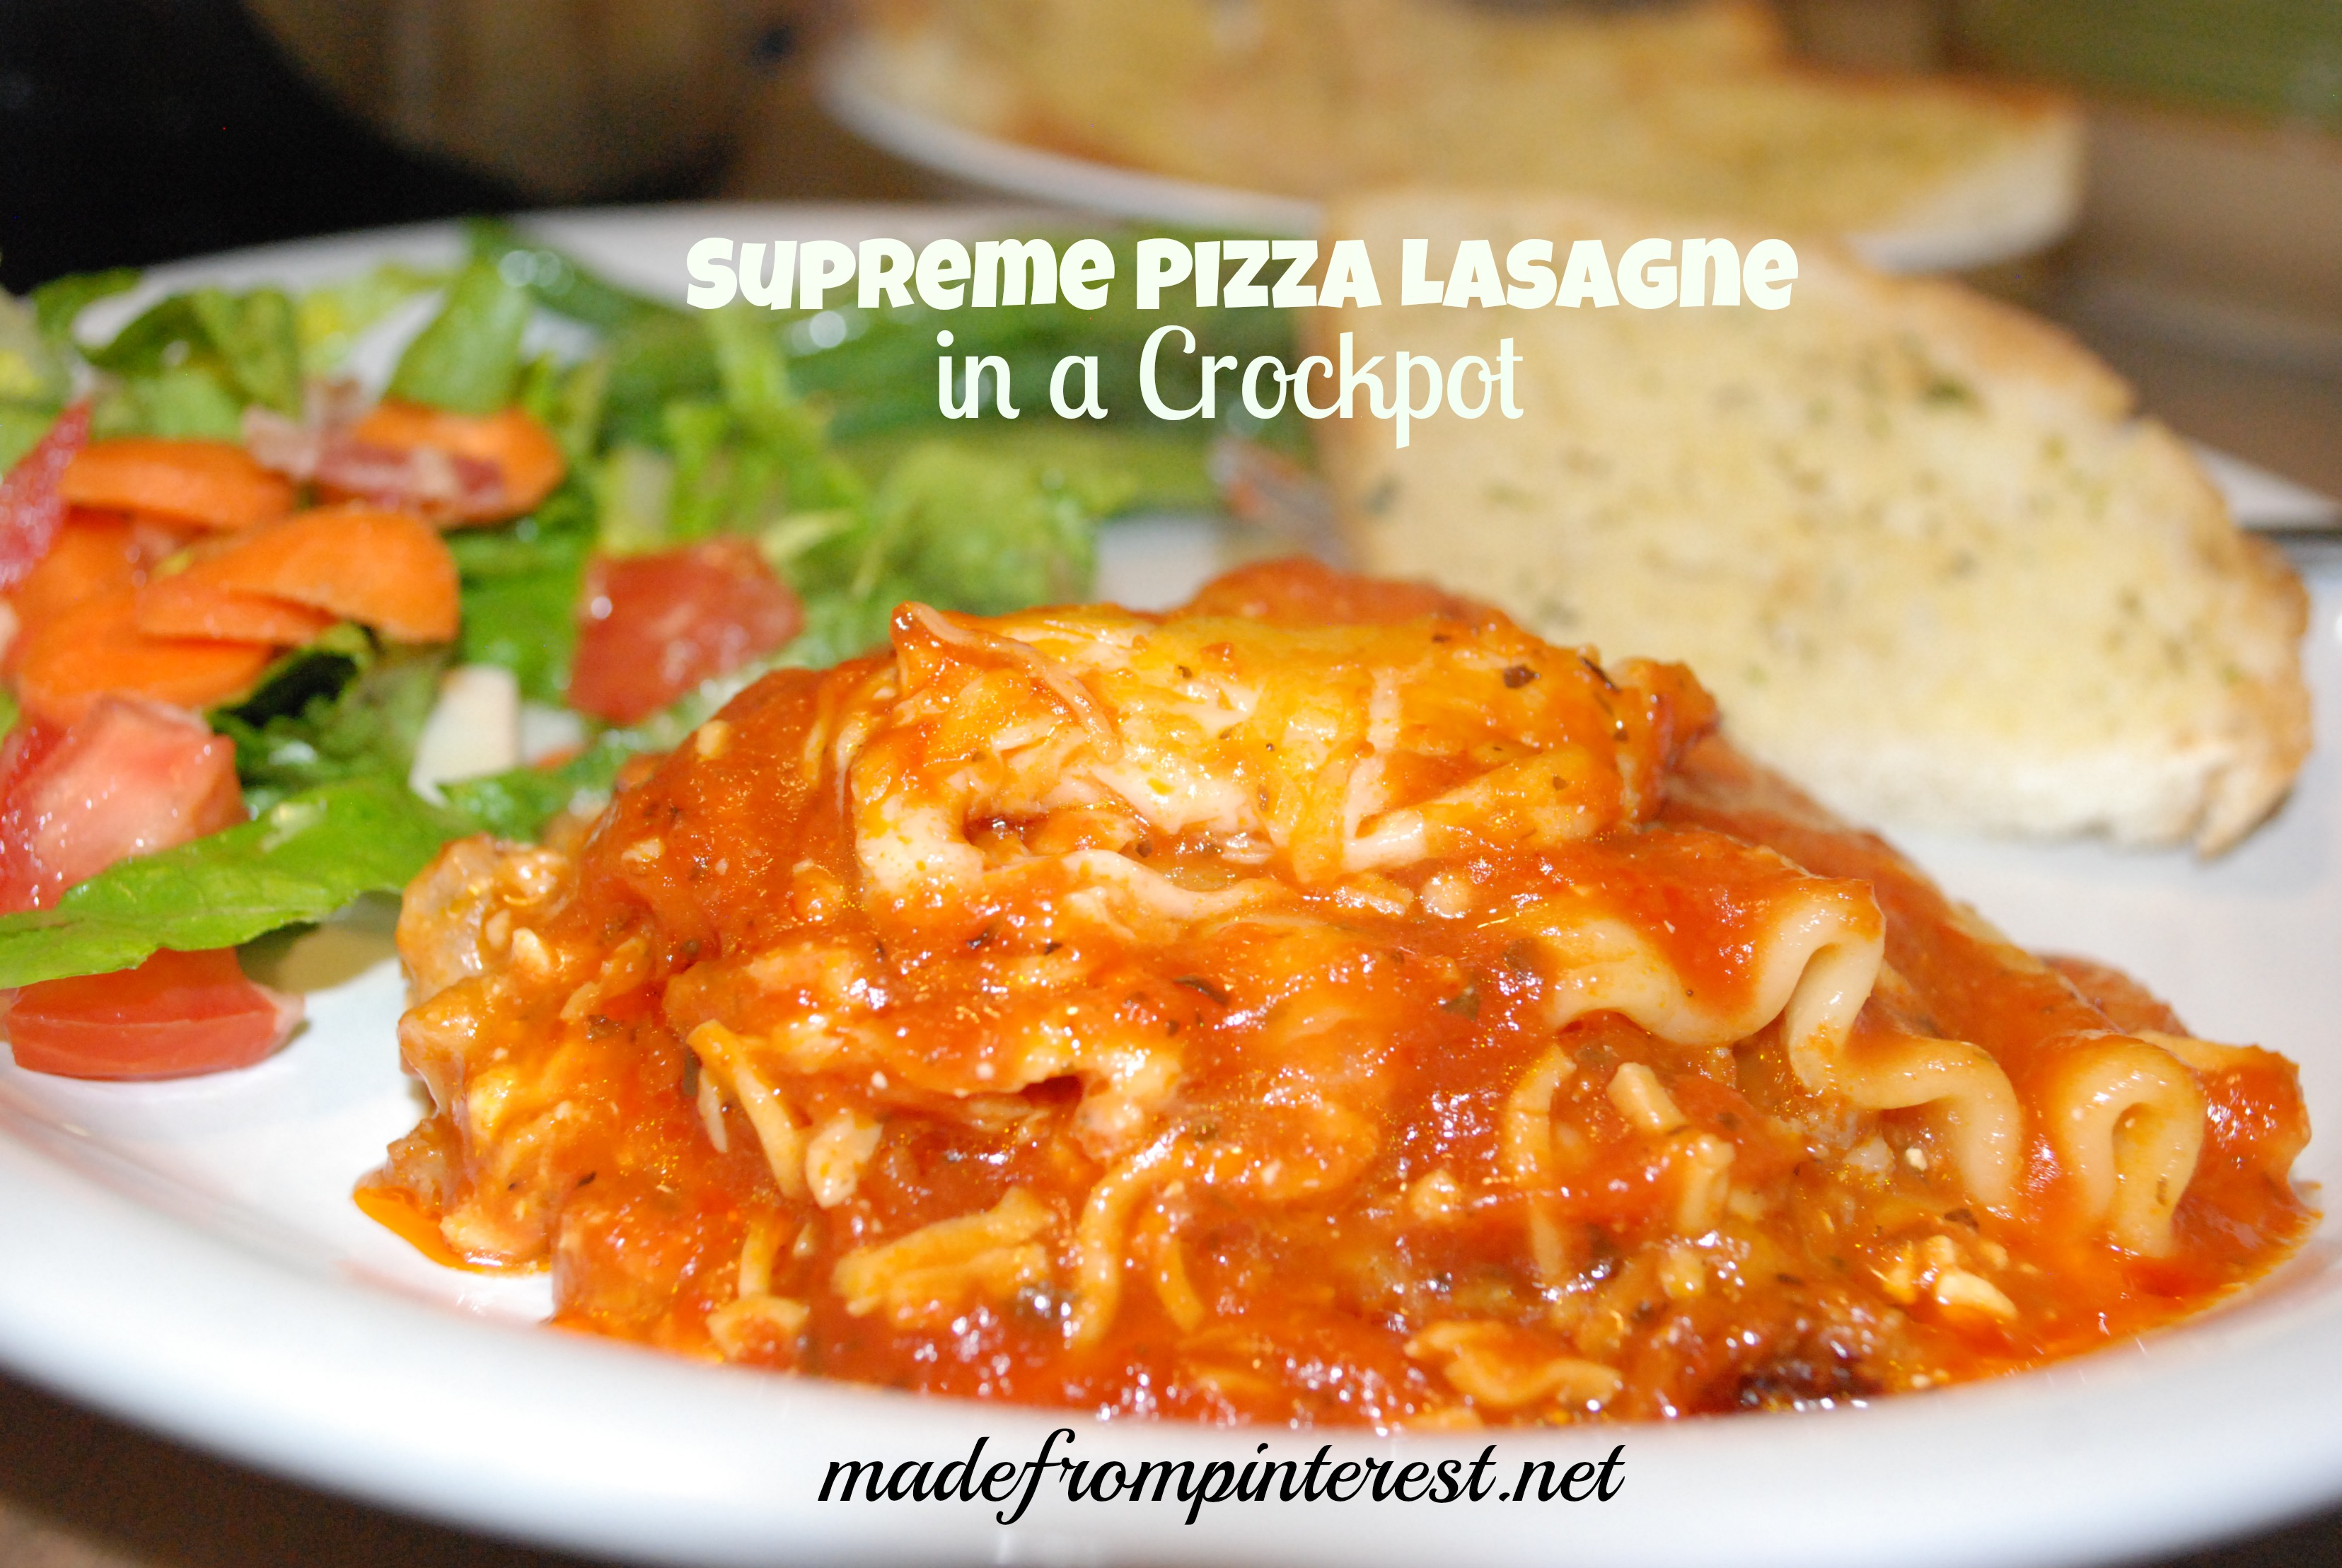 Supreme Pizza Lasagne in a Crockpot | madefrompinterest.net